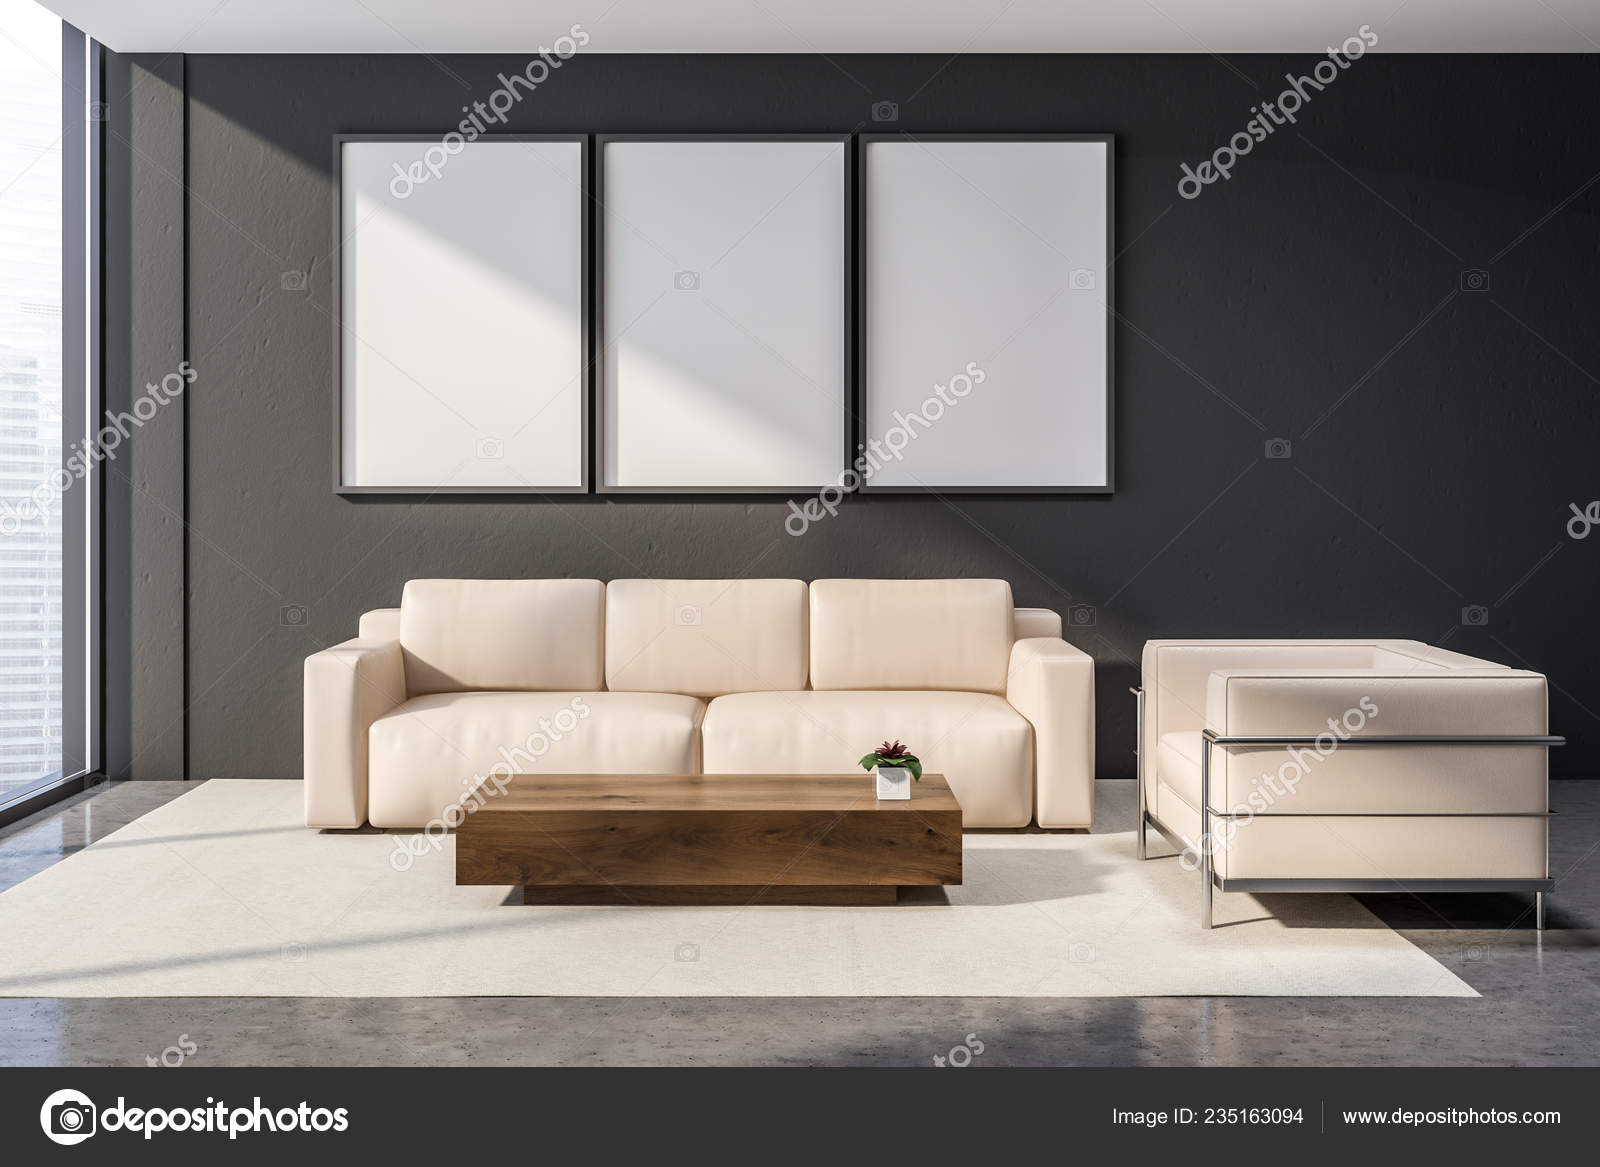 Awesome Office Waiting Room Interior Gray Walls Concrete Floor Beige Dailytribune Chair Design For Home Dailytribuneorg